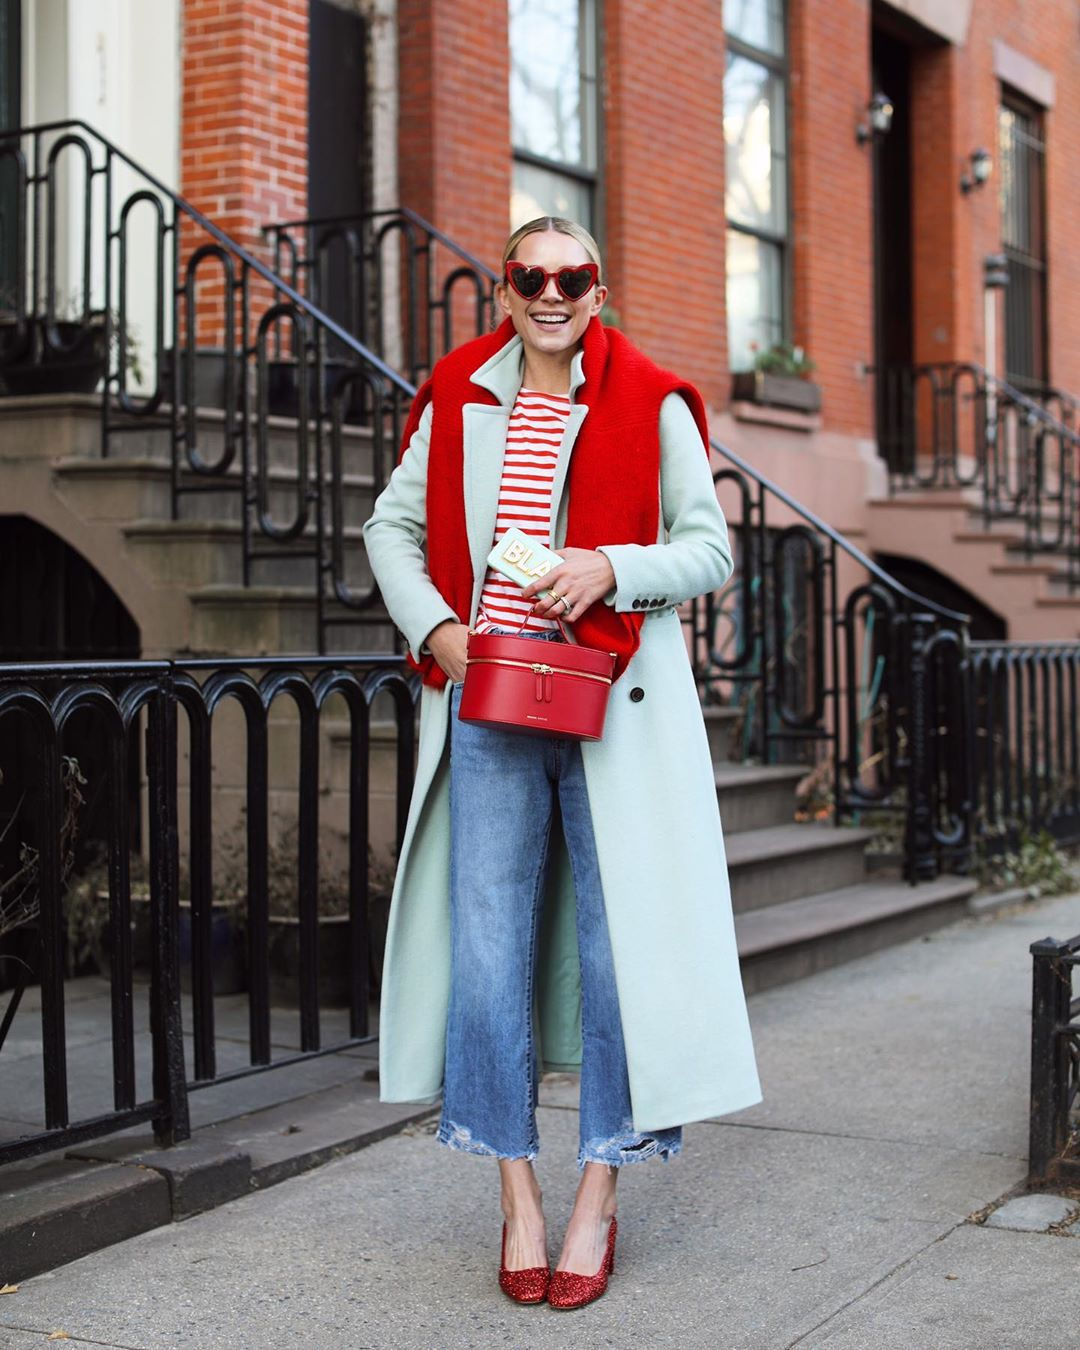 shoes pumps cropped jeans long coat double breasted blue coat boxed bag striped top sweater sunglasses